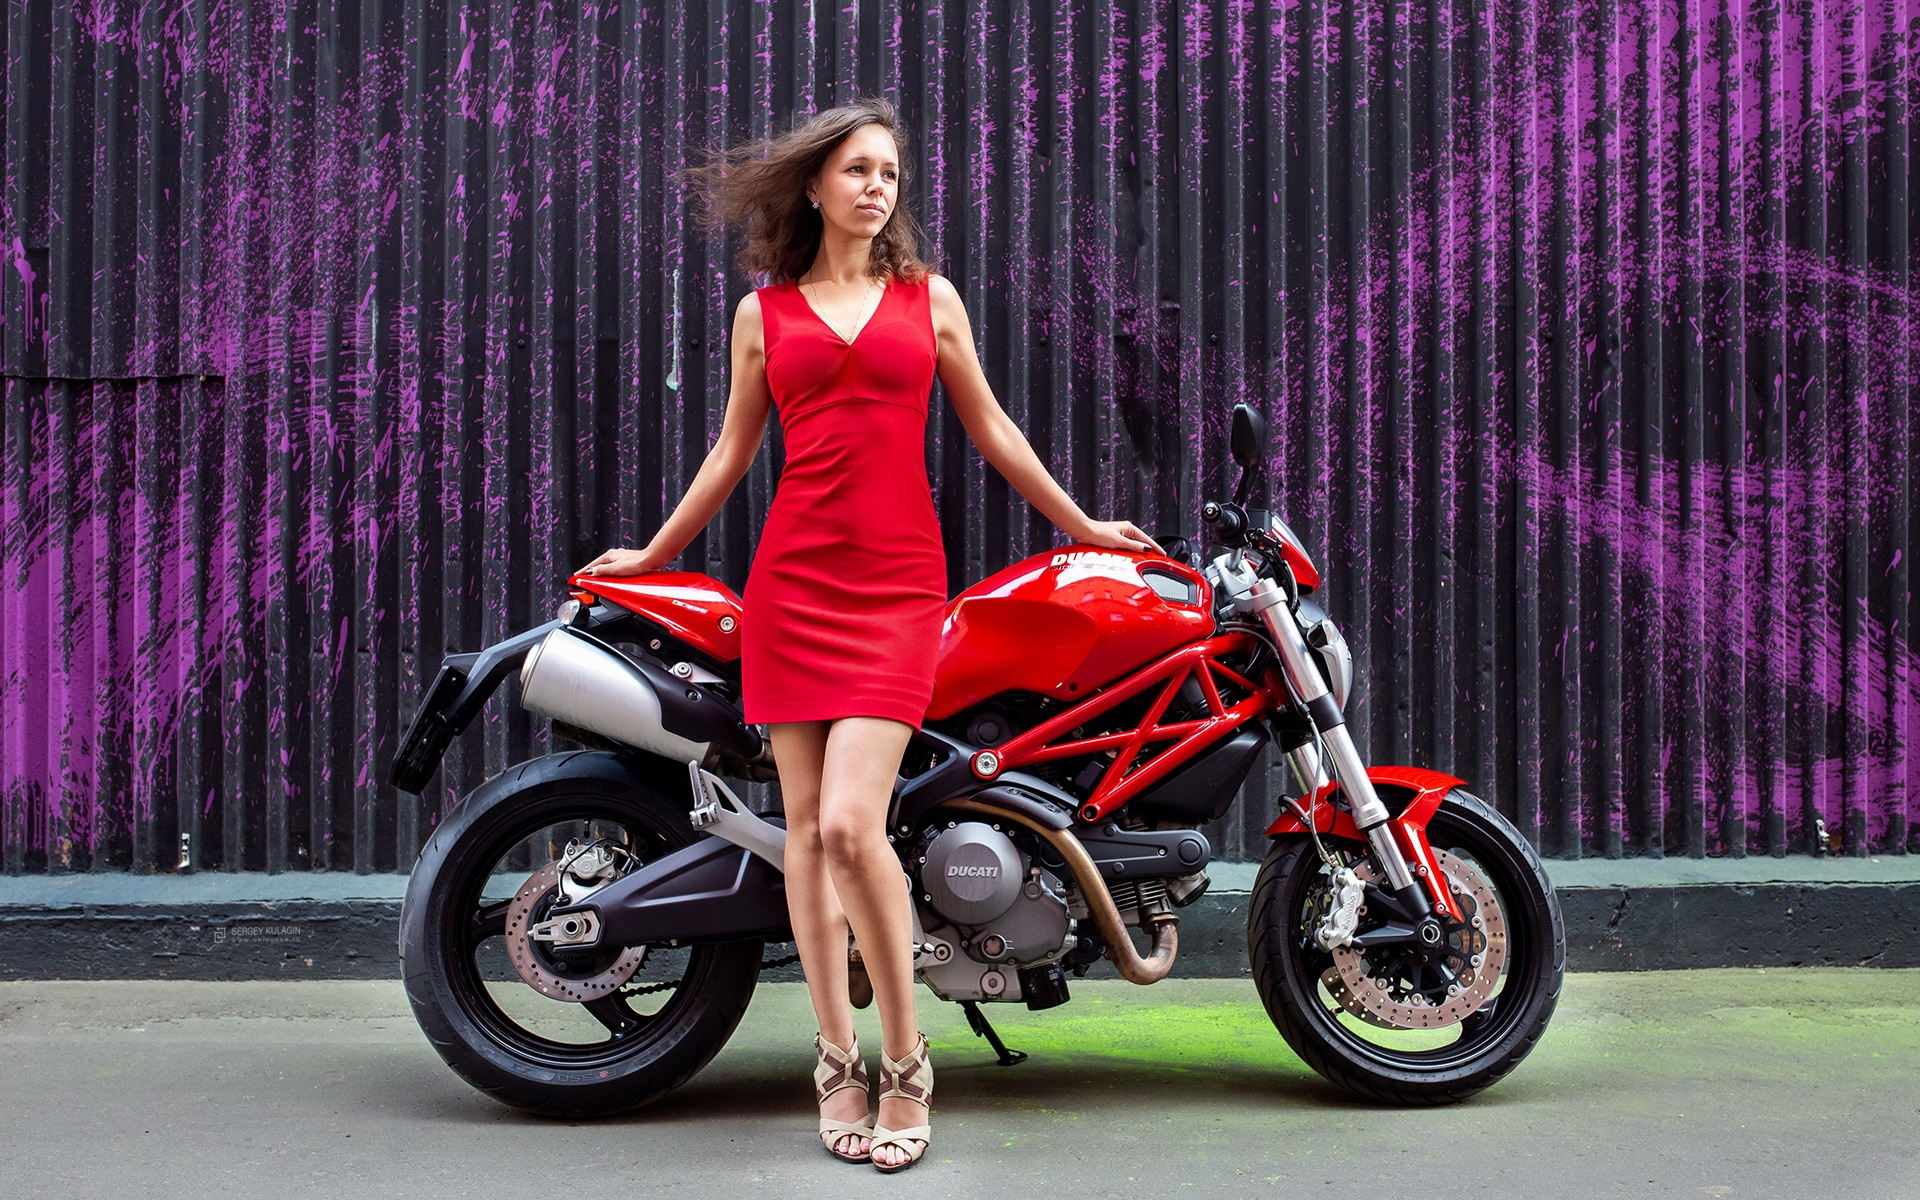 Moto and girl in red by Sergey Kulagin